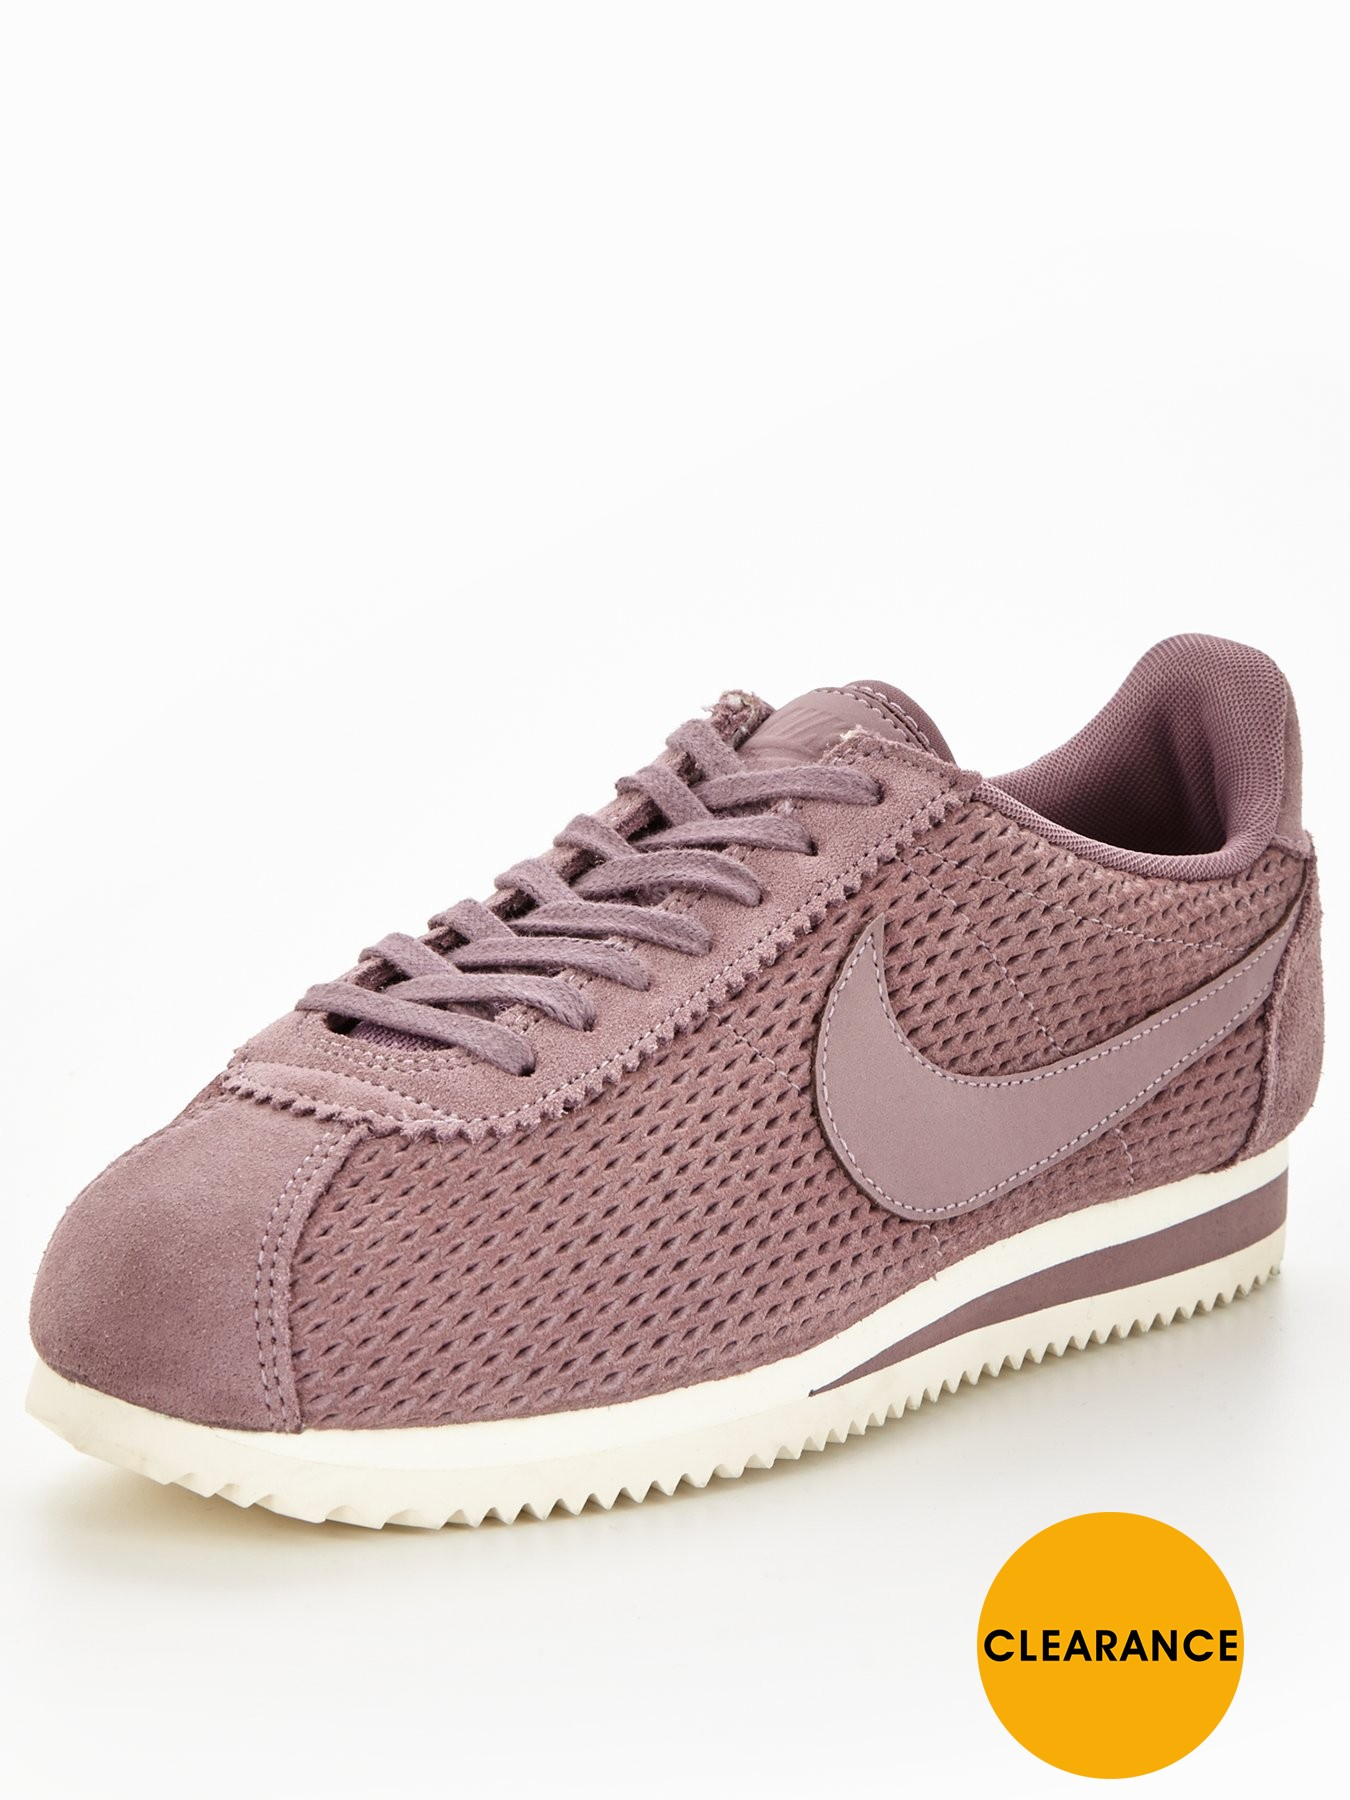 Nike Classic Cortez SE Taupe 1600164042 Women's Shoes Nike Trainers